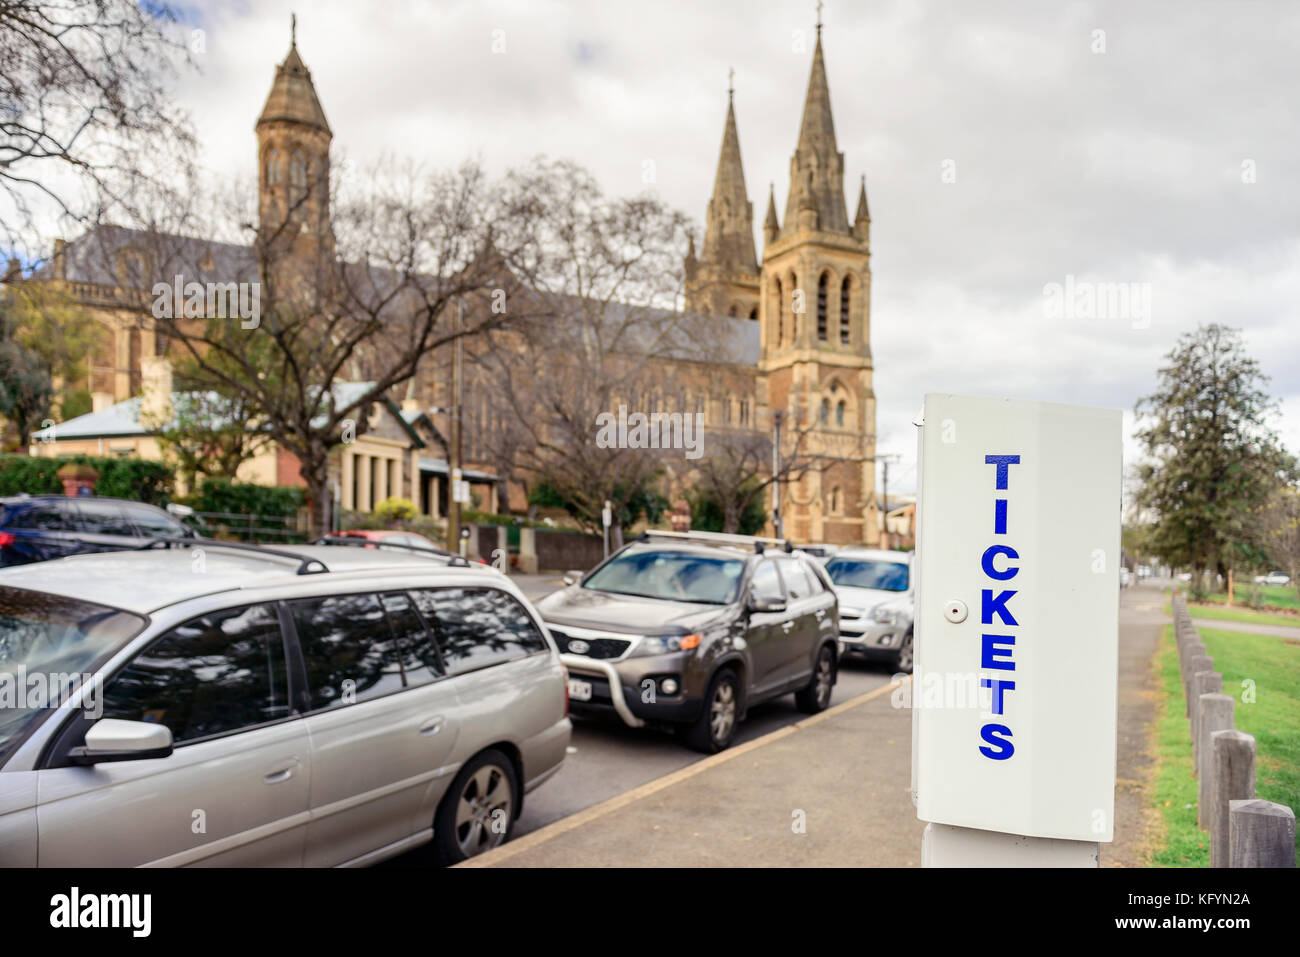 Adelaide, Australia - August 27, 2017: Parking meter  installed near St. Peter's Cathedral in Adelaide CBD with - Stock Image